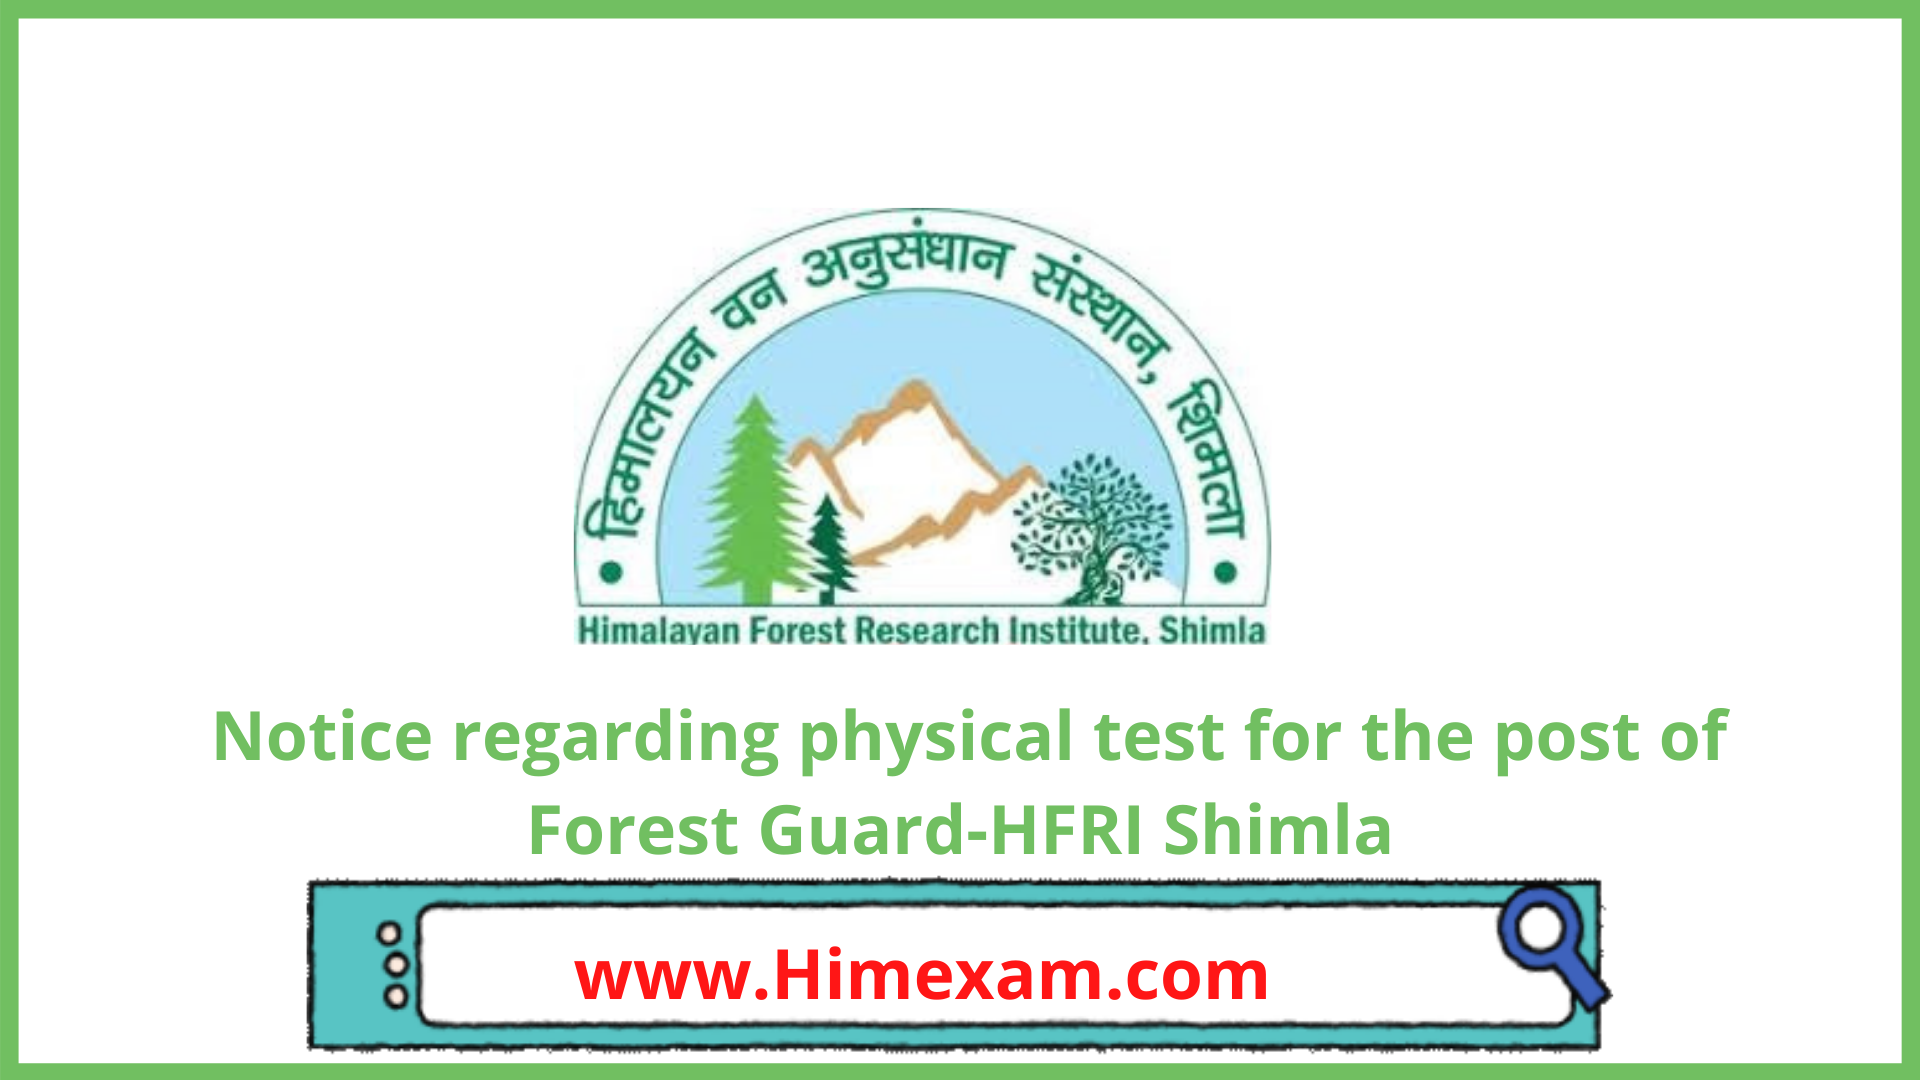 Notice regarding physical test for the post of Forest Guard-HFRI Shimla